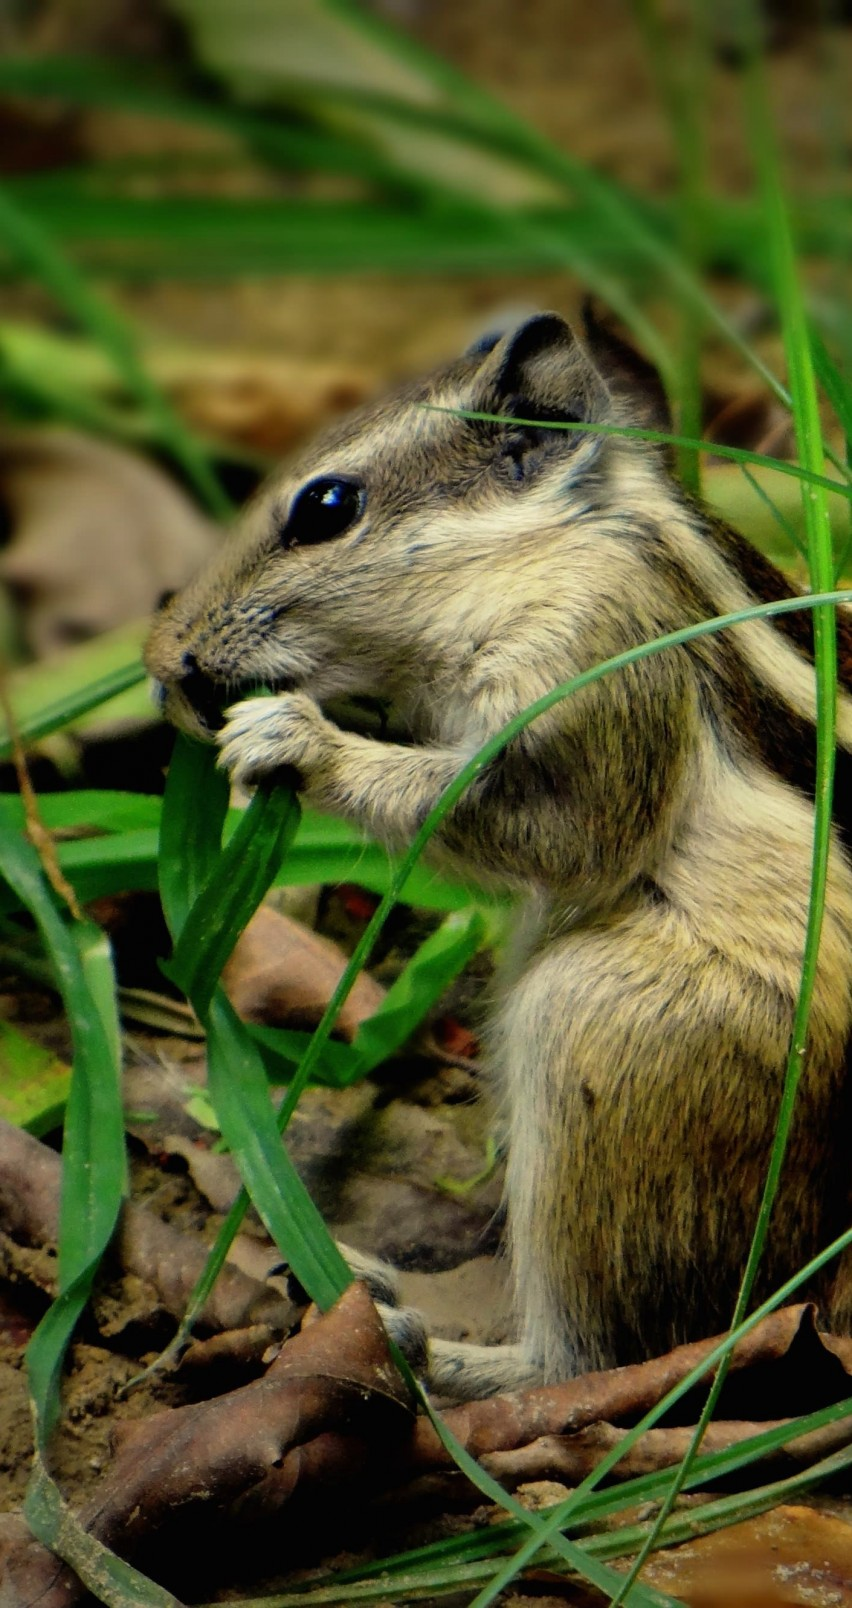 Chipmunk In The Grass Wallpaper for Apple iPhone 6 / 6s